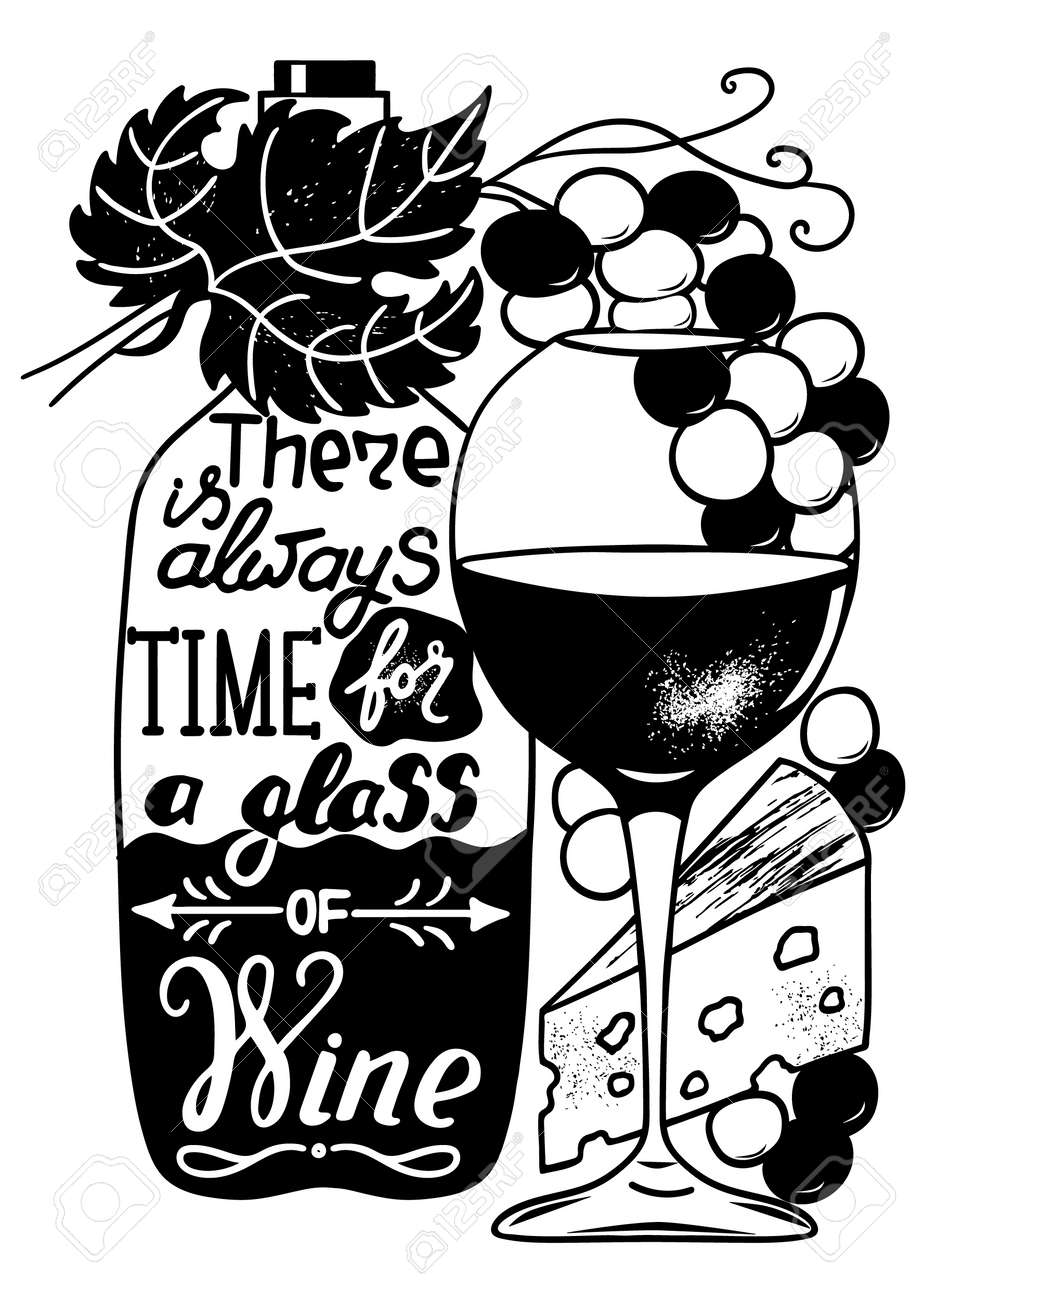 There is always time for a glass of wine. Funny saying for posters, cafe and bar, t-shirt design. Brush calligraphy. Hand illustration of bottle, glass and lettering. Vector design - 163390165